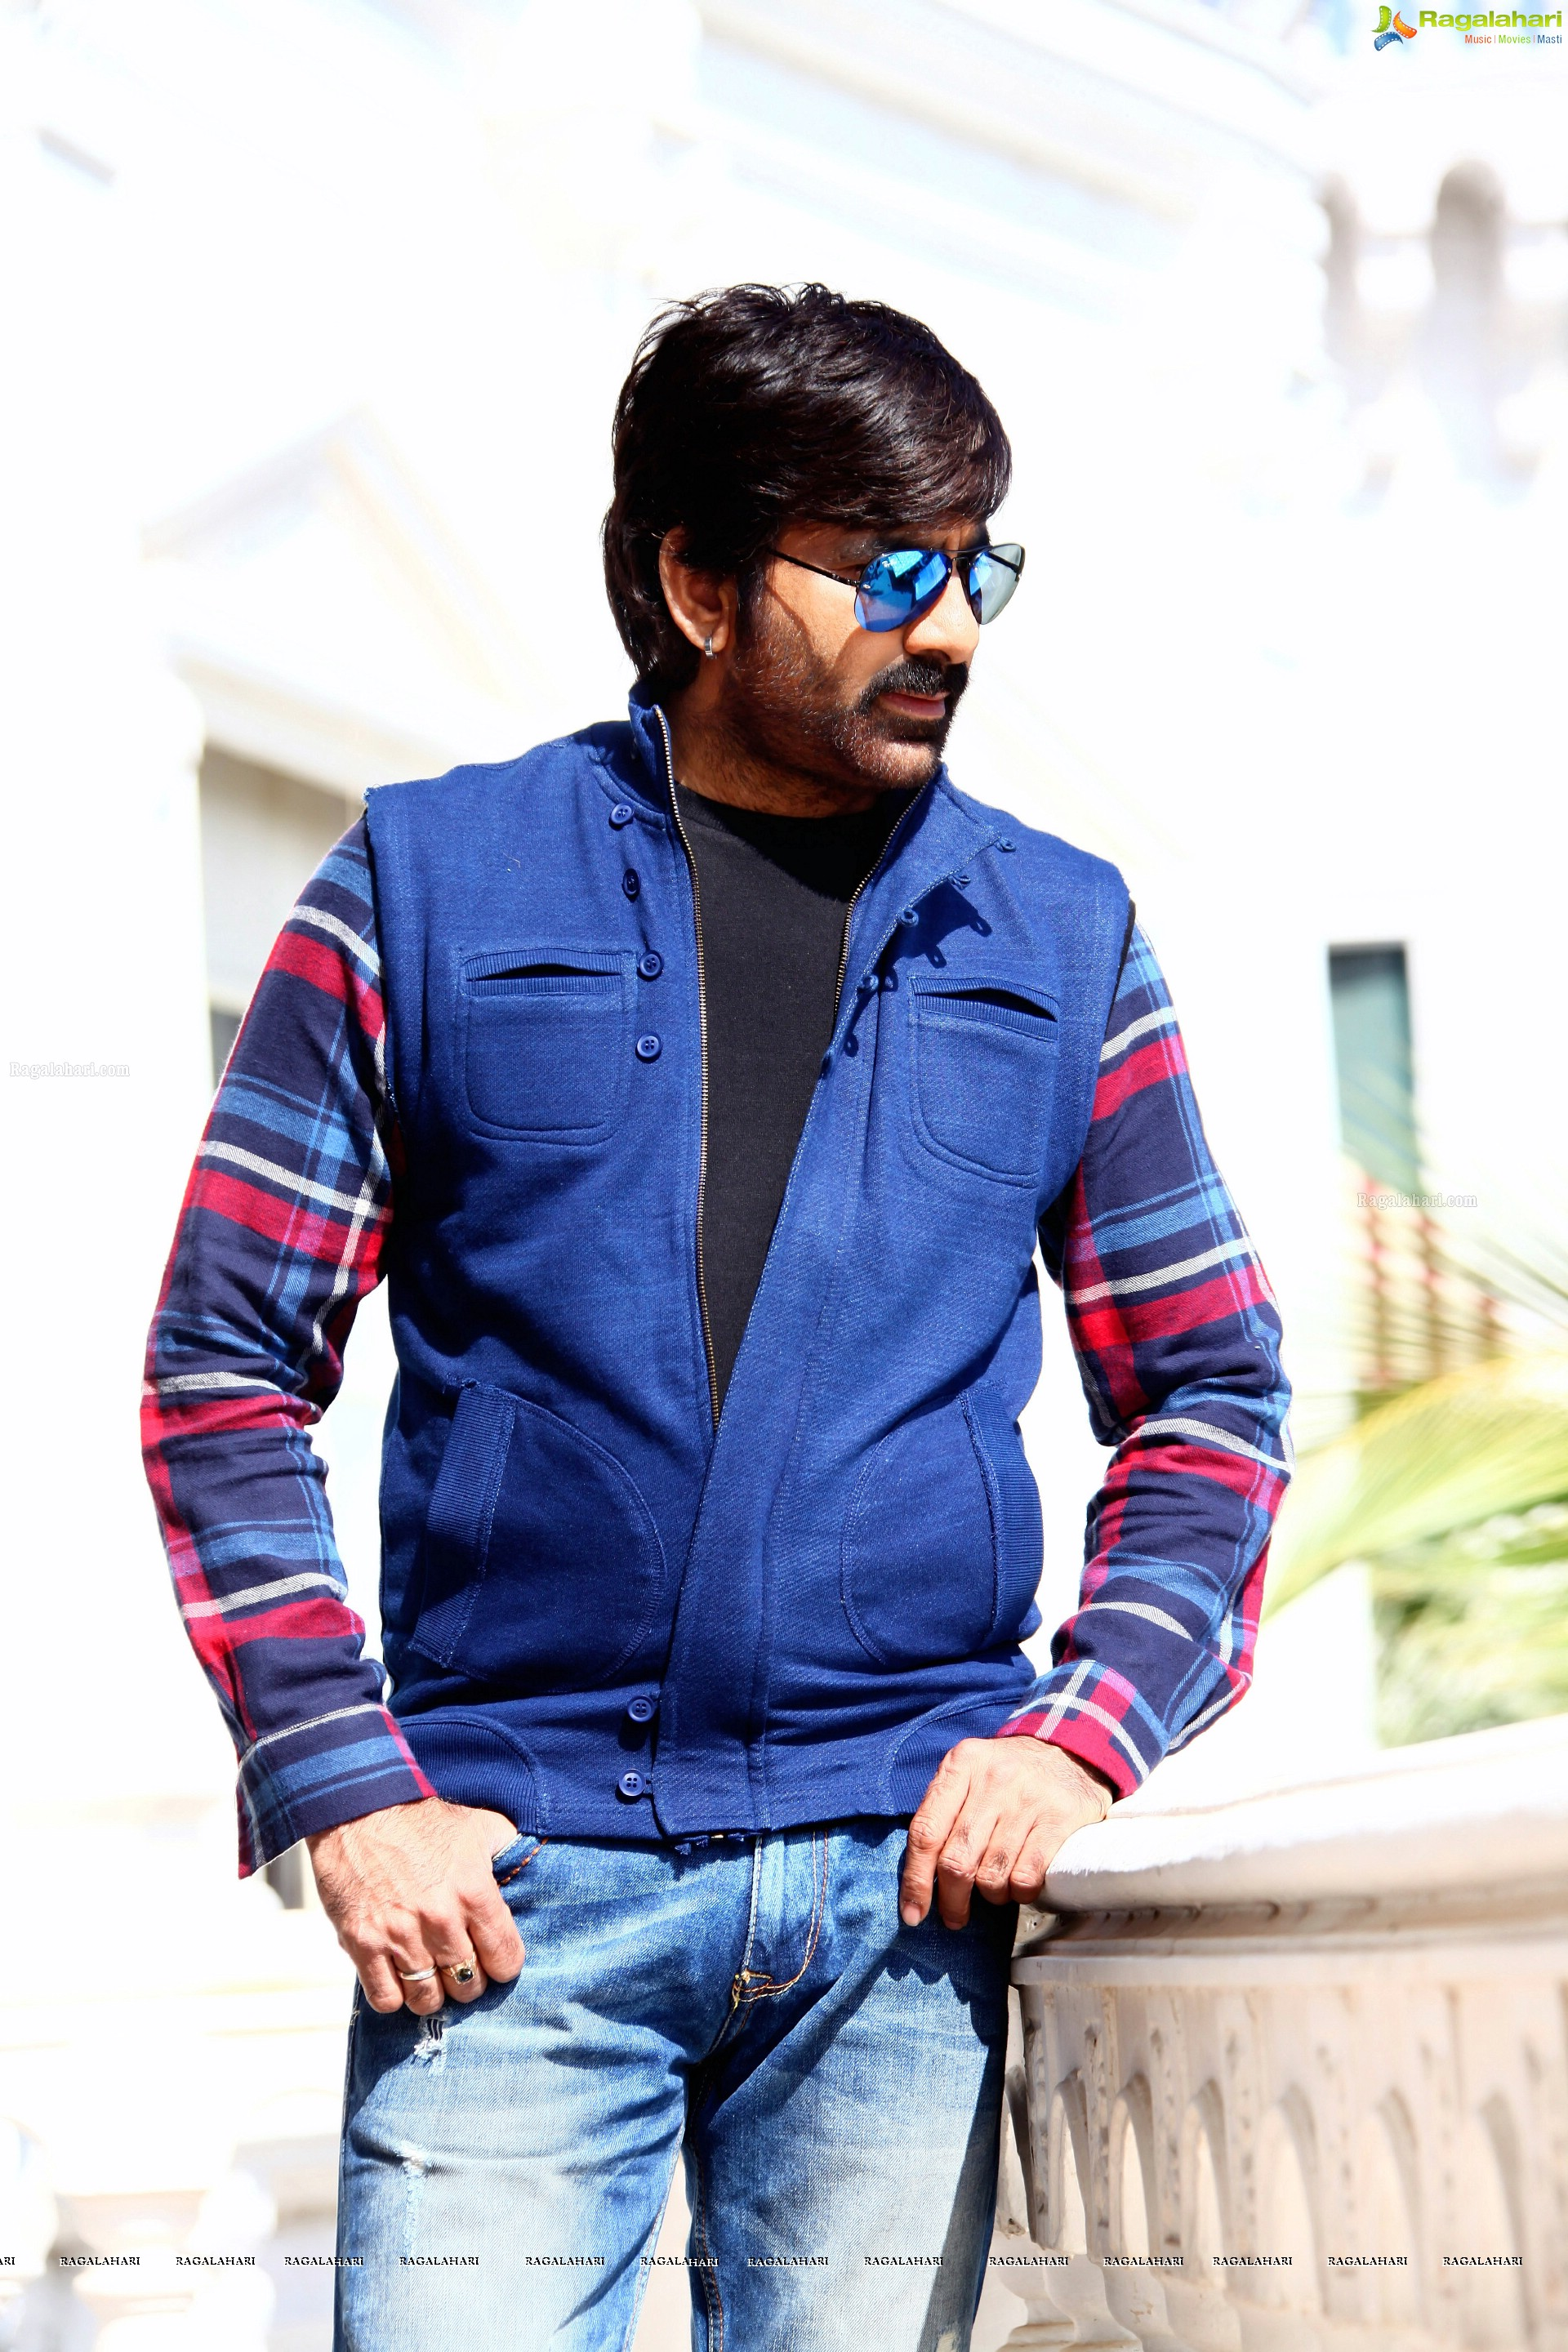 ravi teja (hd) image 7 | tollywood heroines photos,photoshoot